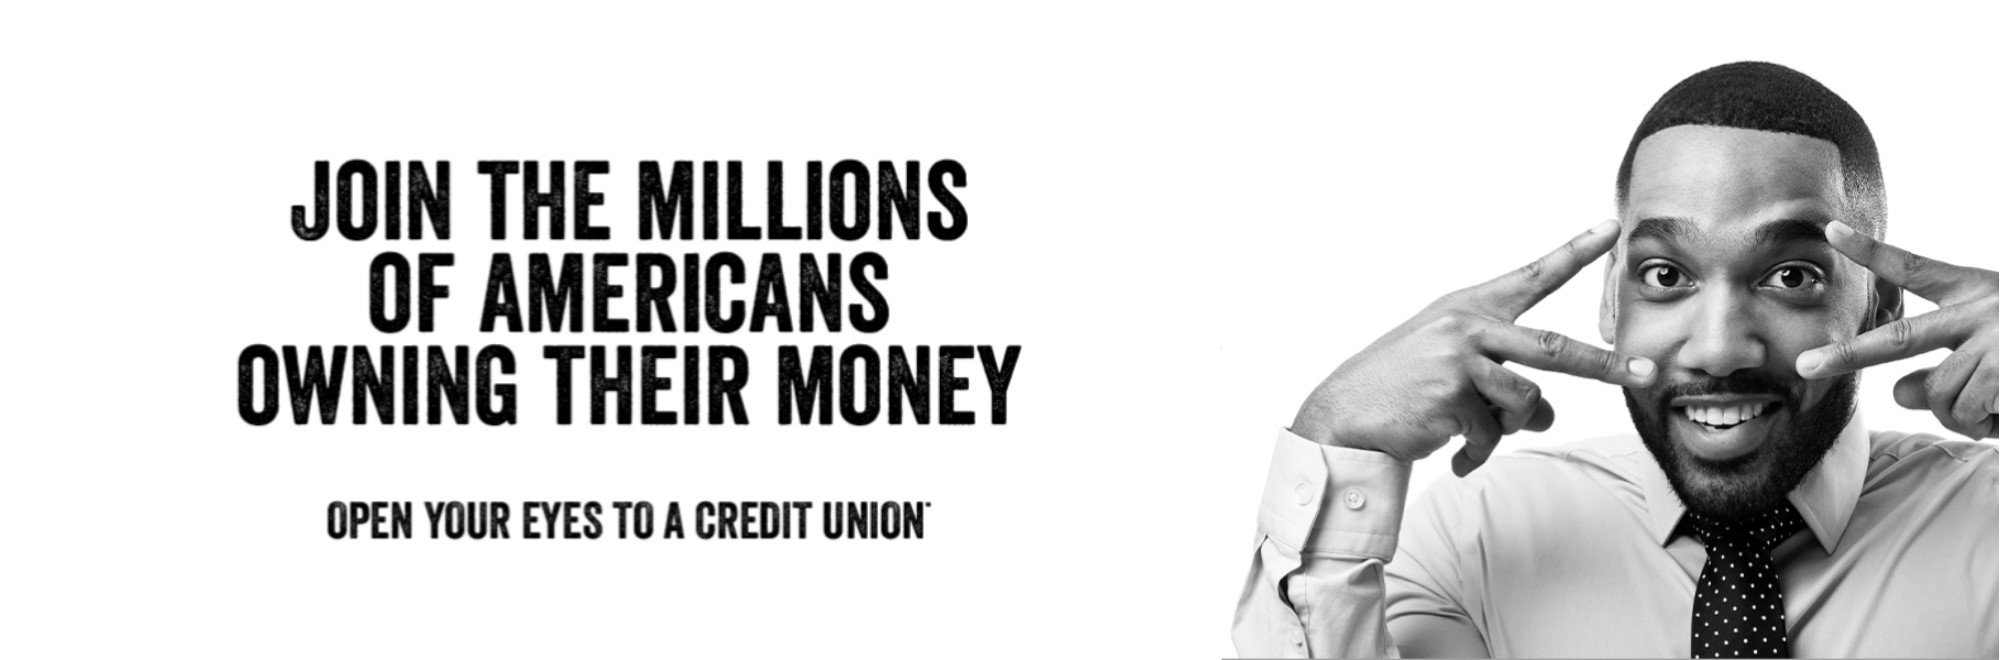 join the millions of americans owning their money. open your eyes to a credit union